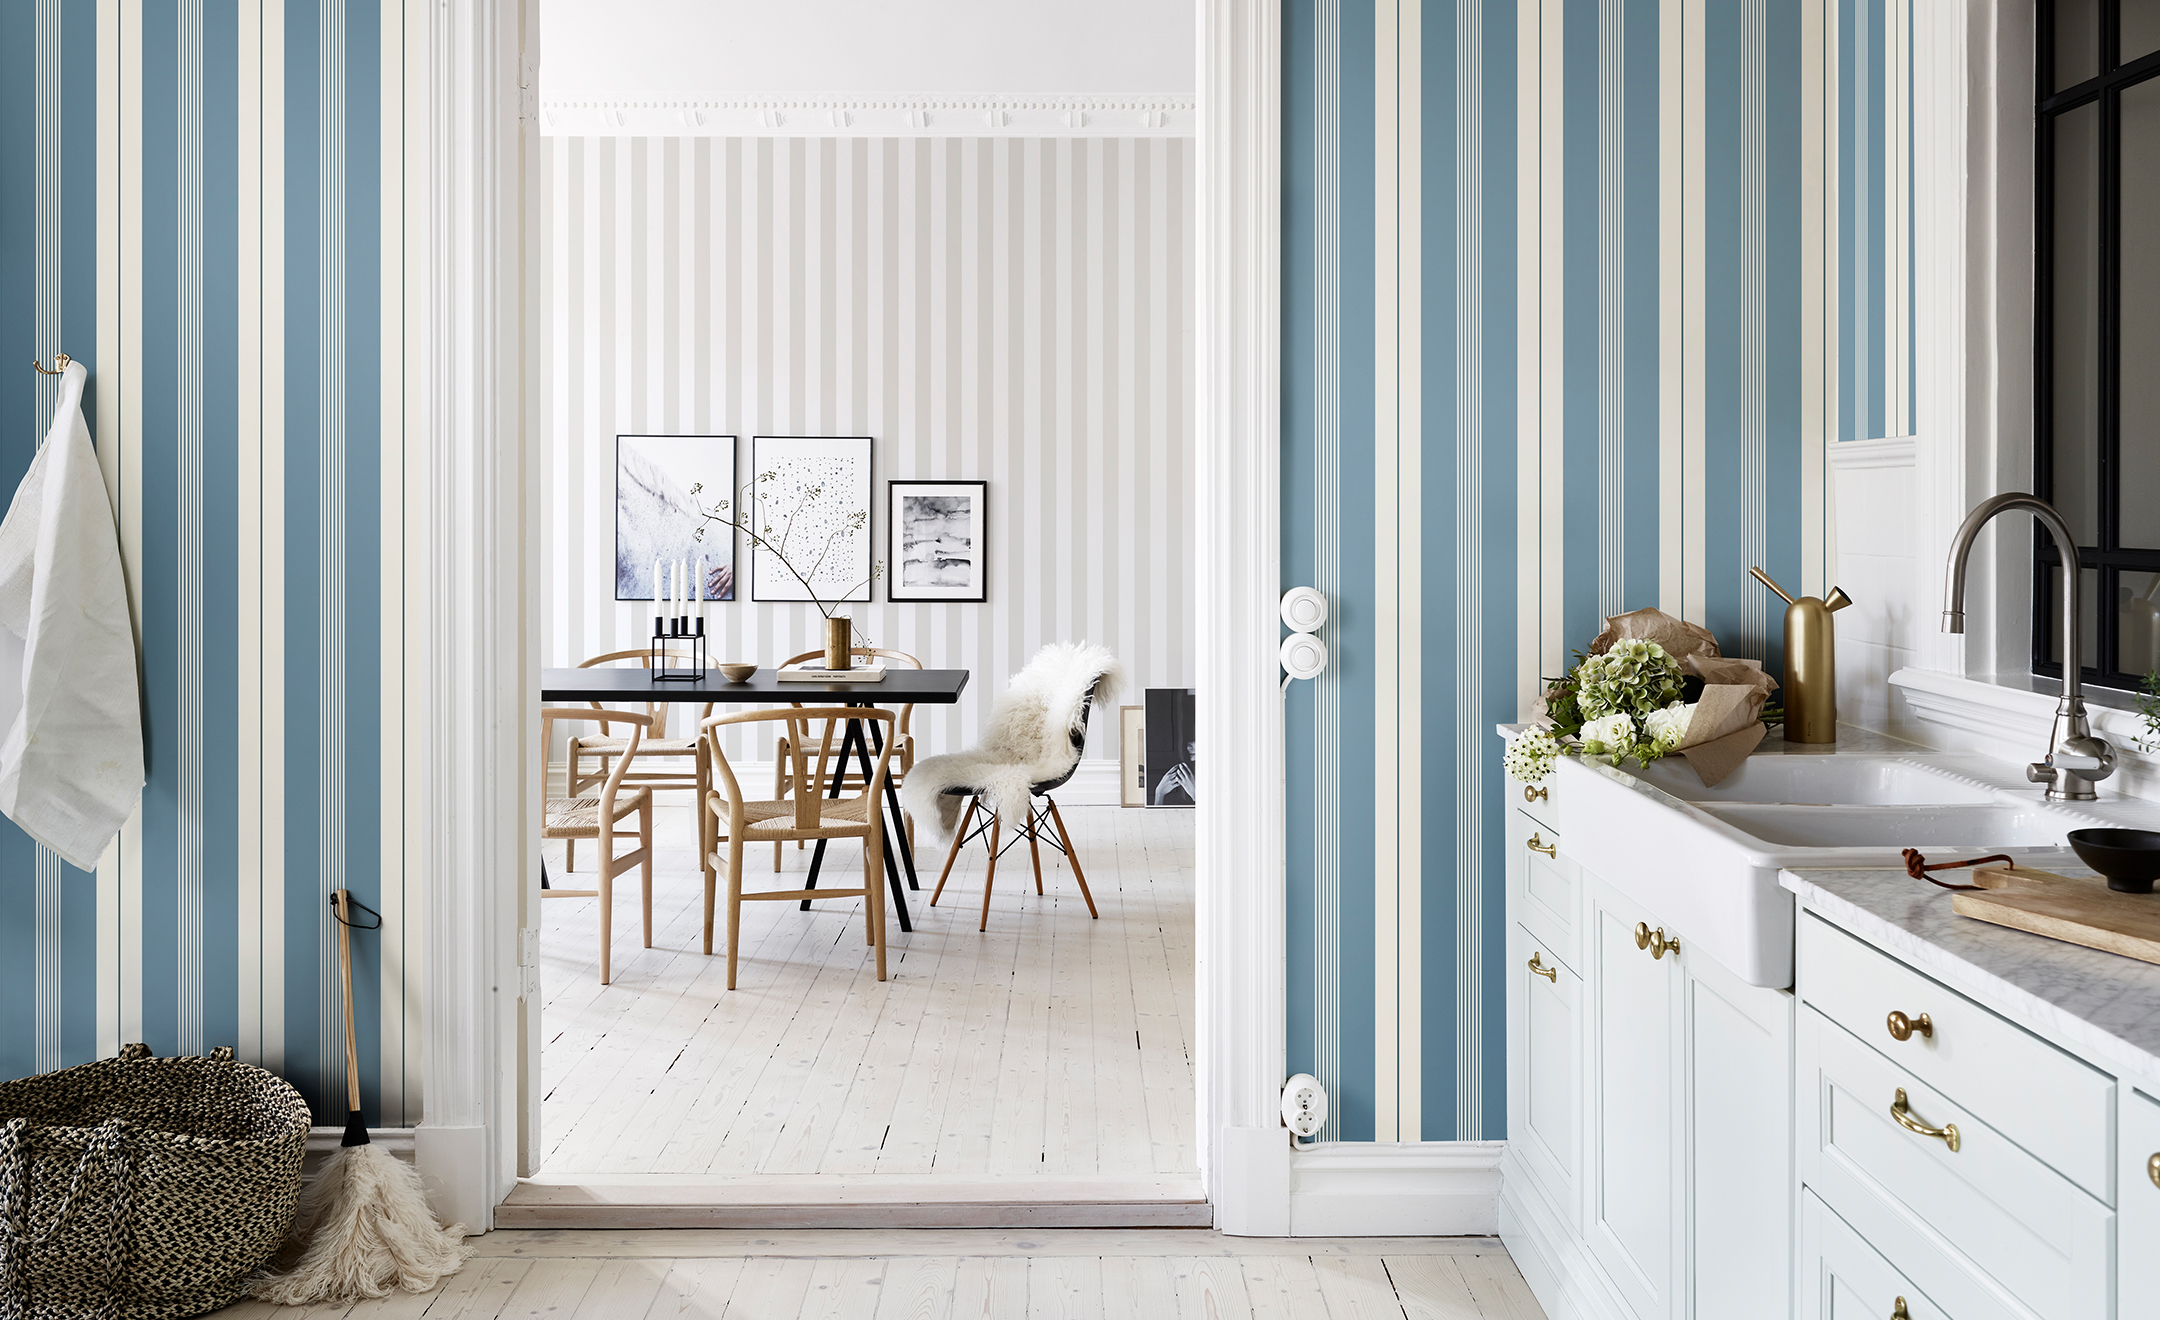 10 Striped Wallpaper Design Ideas - Bright Bazaar by Will Taylor